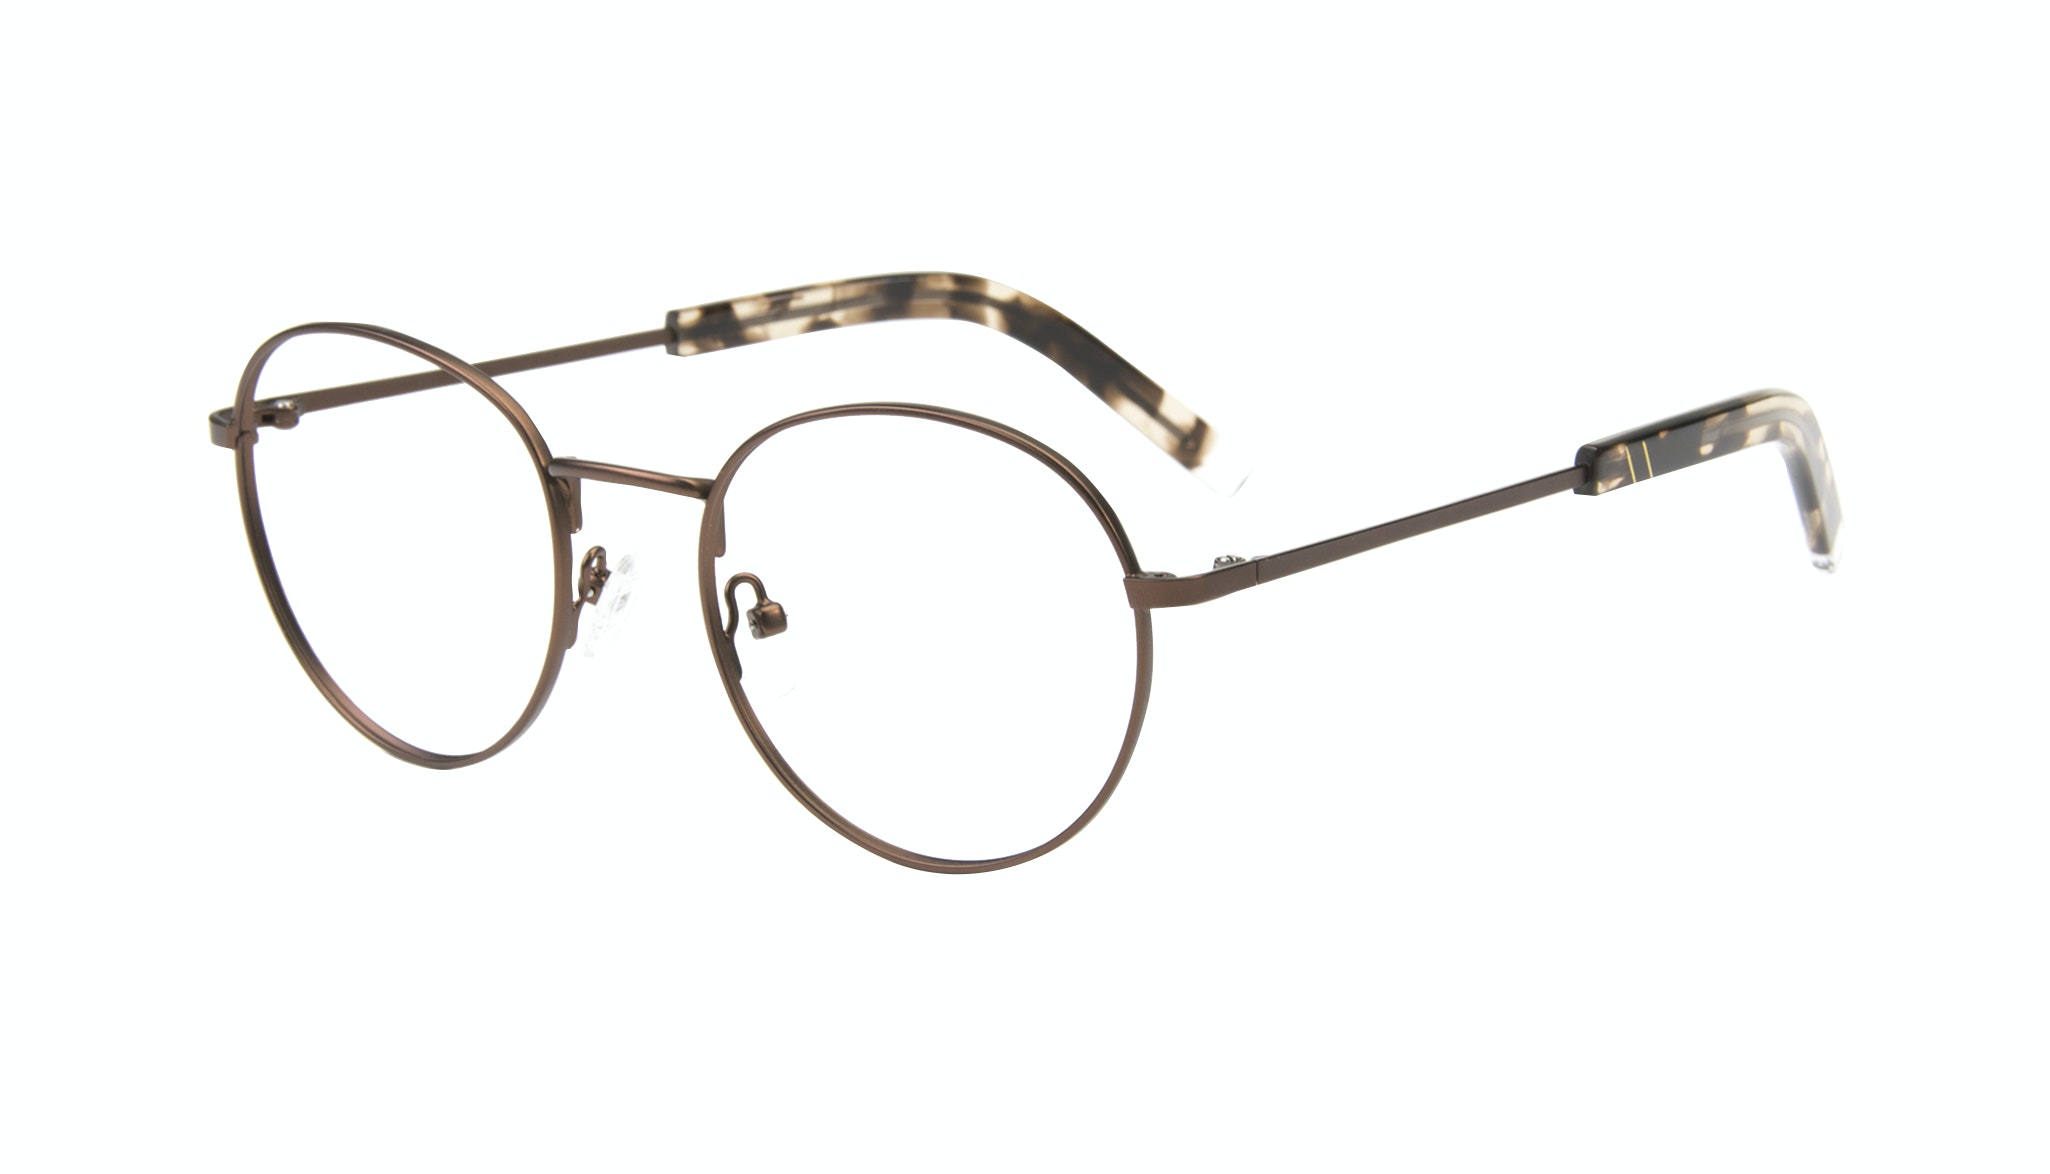 Affordable Fashion Glasses Round Eyeglasses Men Lean Mud Tilt